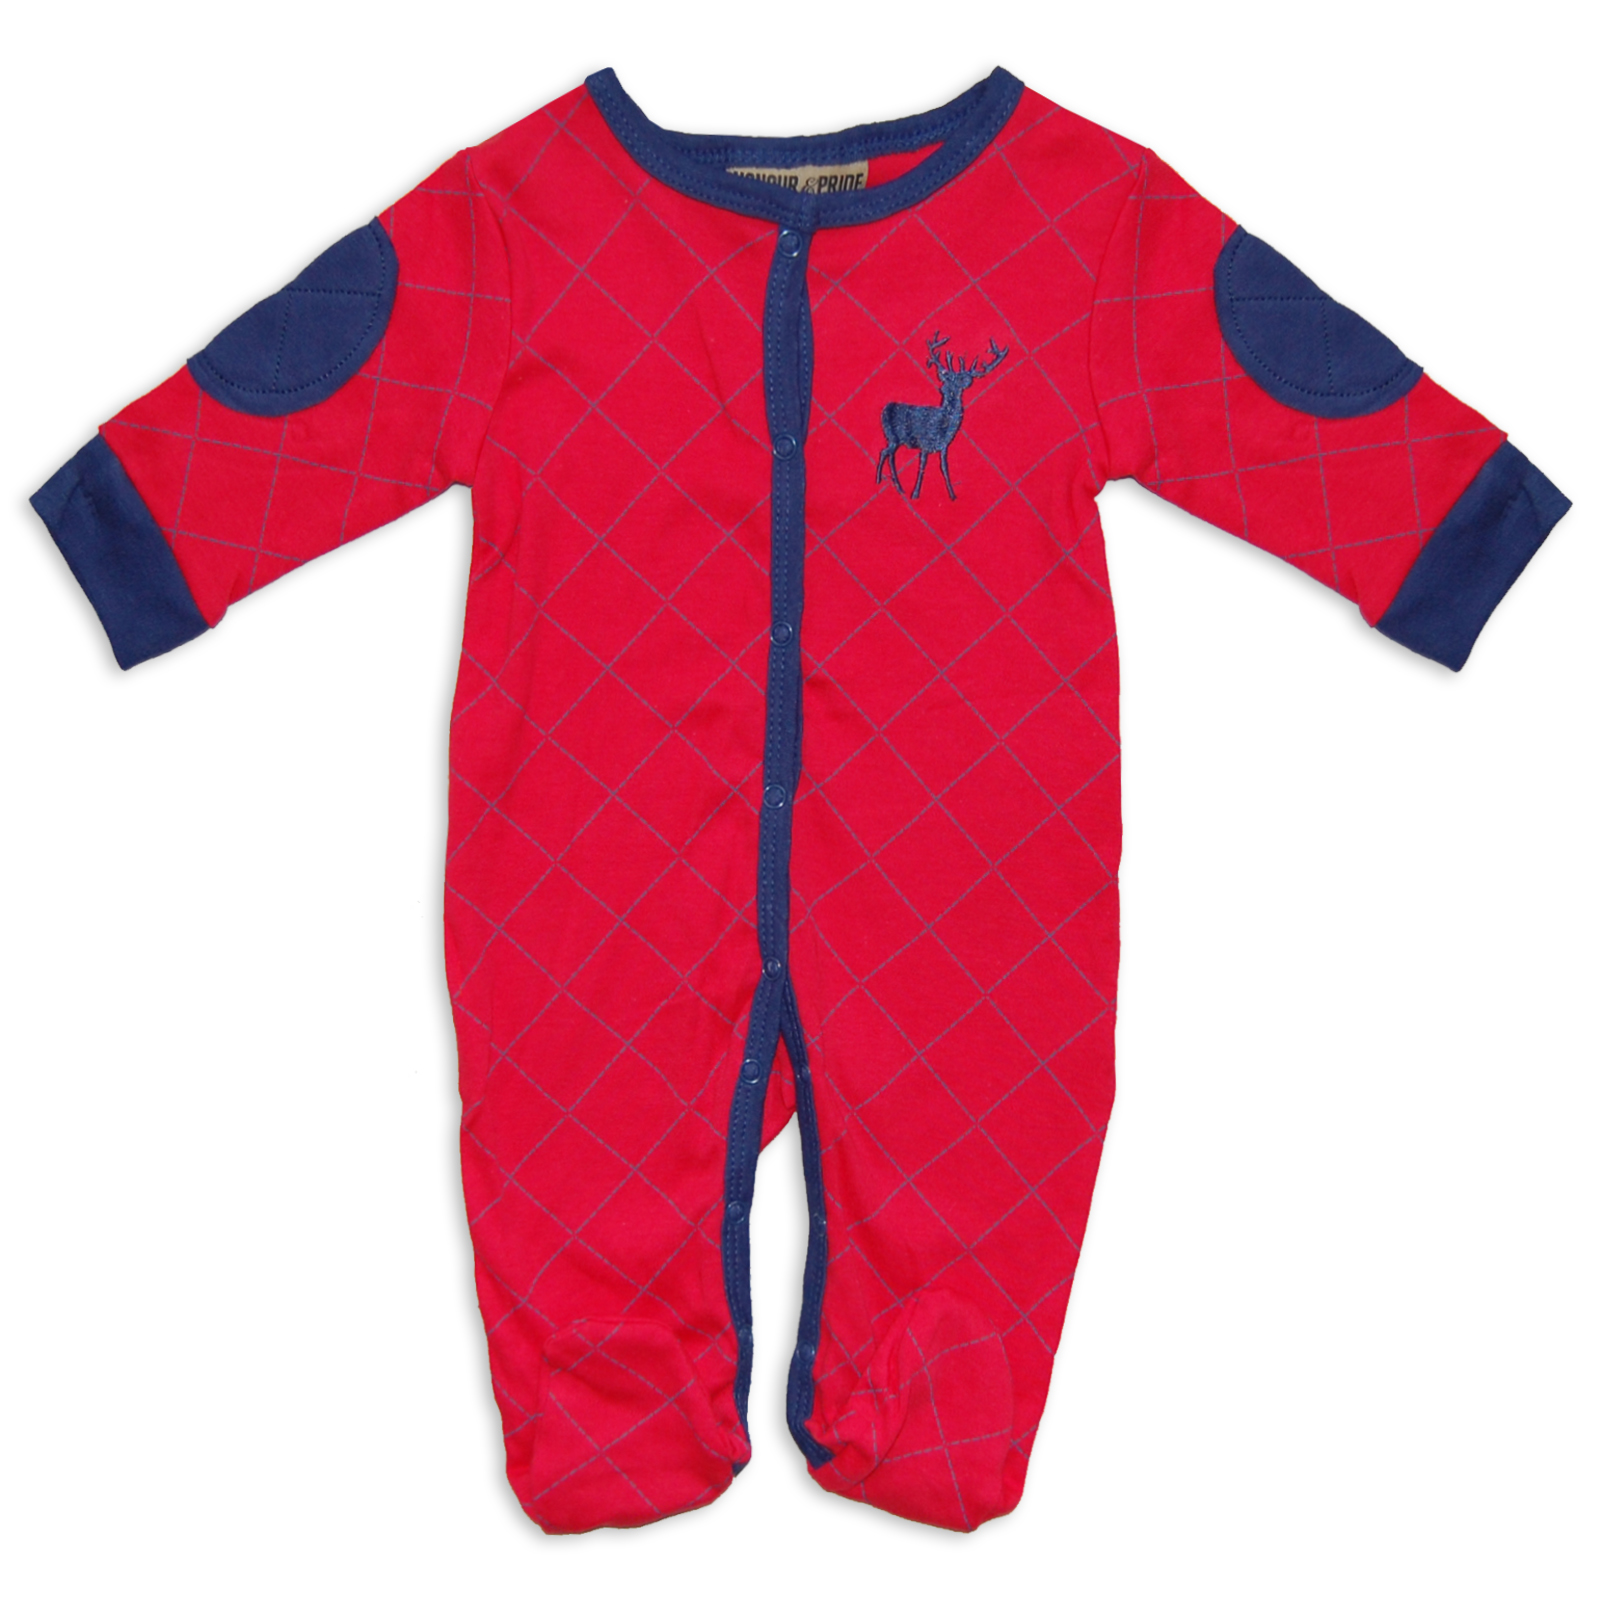 5 piece Red Clothing Layette Baby Boys Festive Set/Outfit With Stag Design | eBay